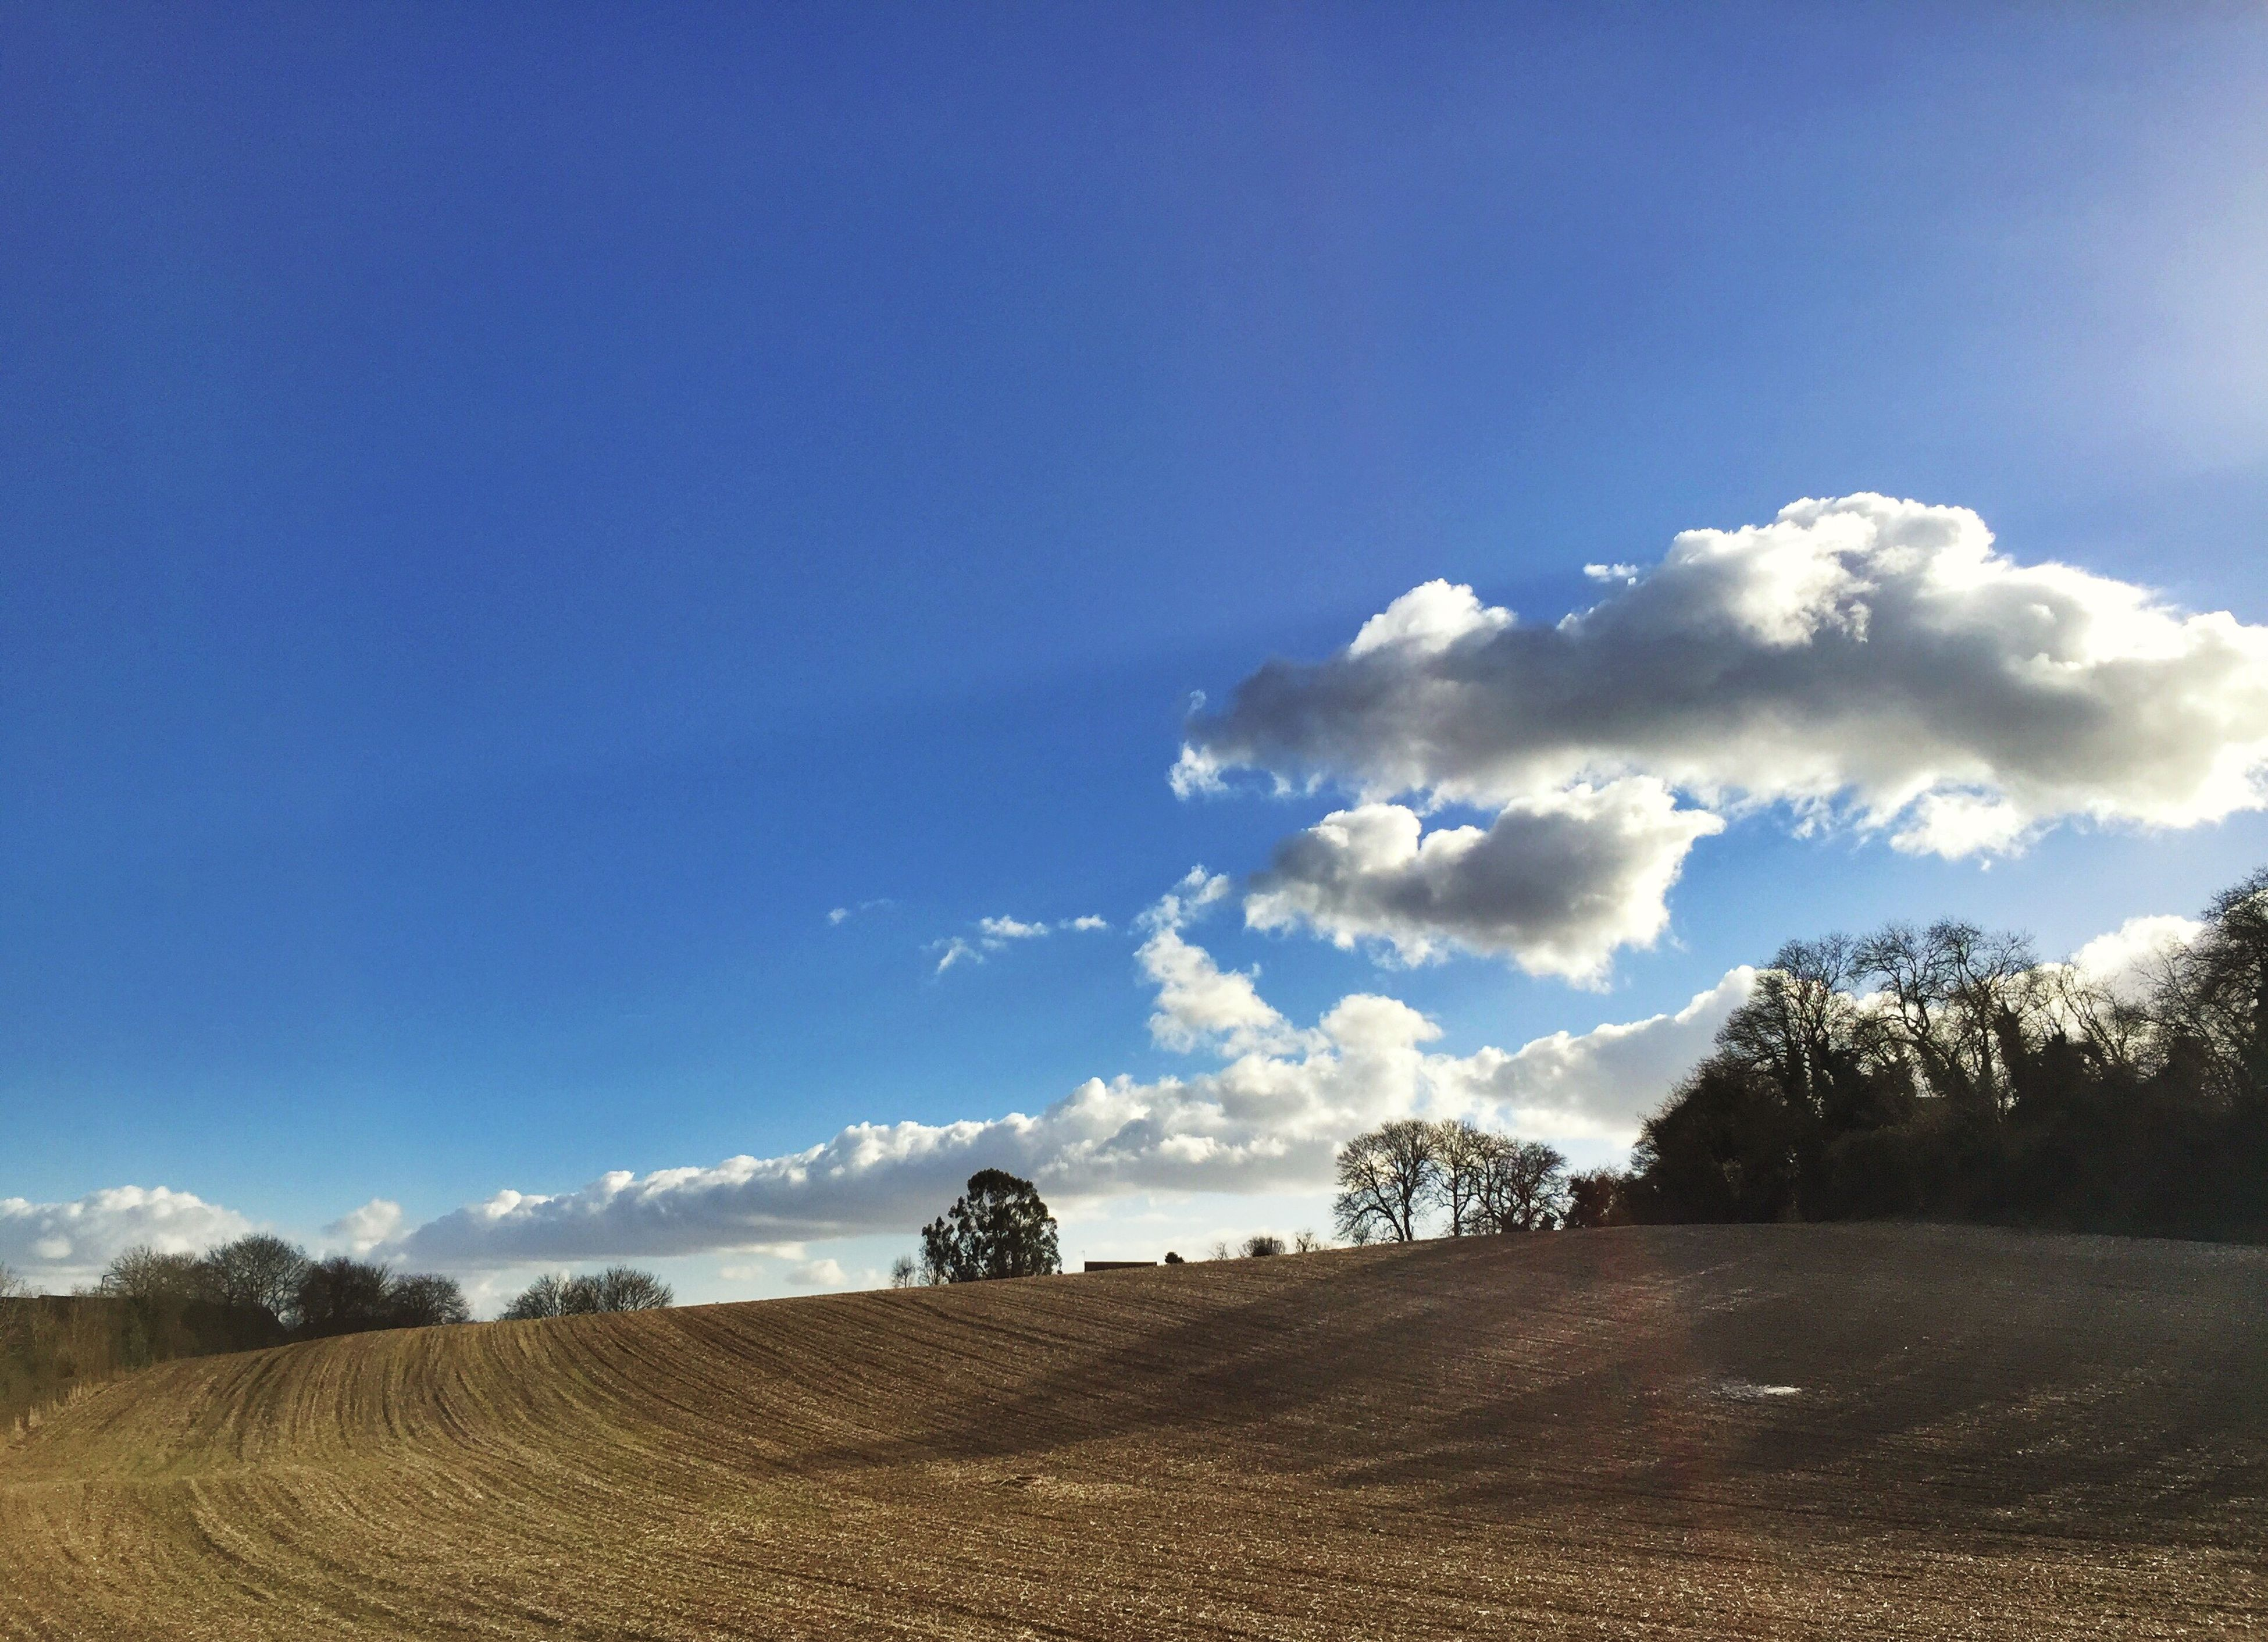 sky, blue, landscape, tree, tranquility, tranquil scene, field, nature, beauty in nature, scenics, cloud - sky, sunlight, copy space, cloud, day, outdoors, non-urban scene, remote, rural scene, no people